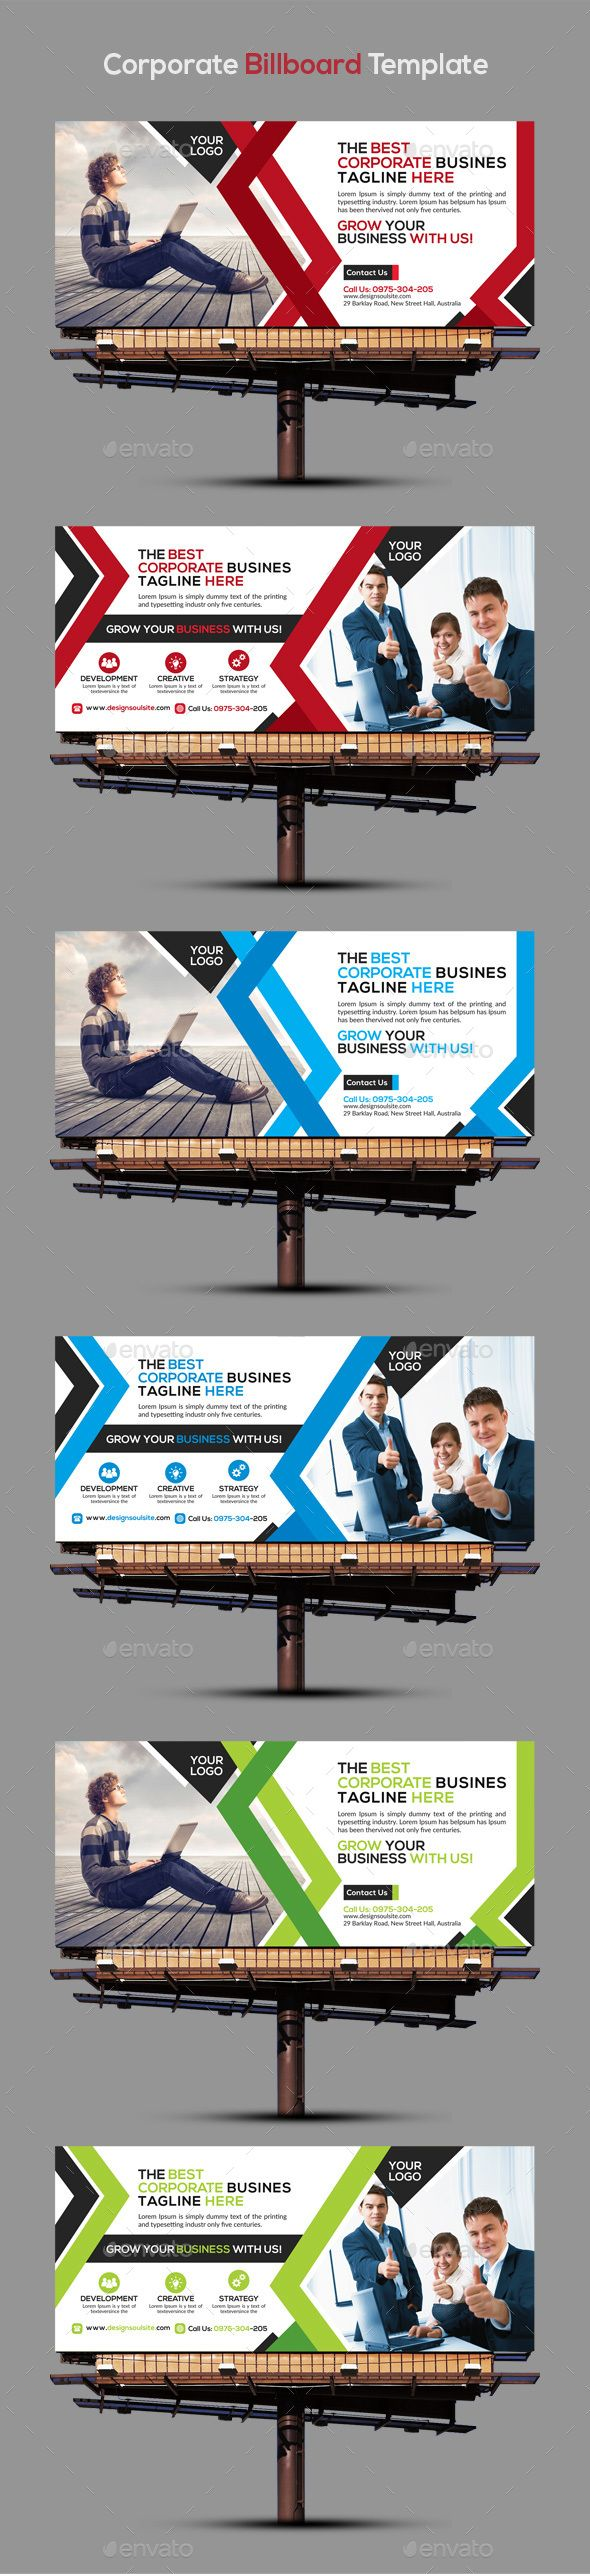 Corporate Billboard Template — Photoshop PSD #billboard #board • Available here → https://graphicriver.net/item/corporate-billboard-template/15246974?ref=pxcr